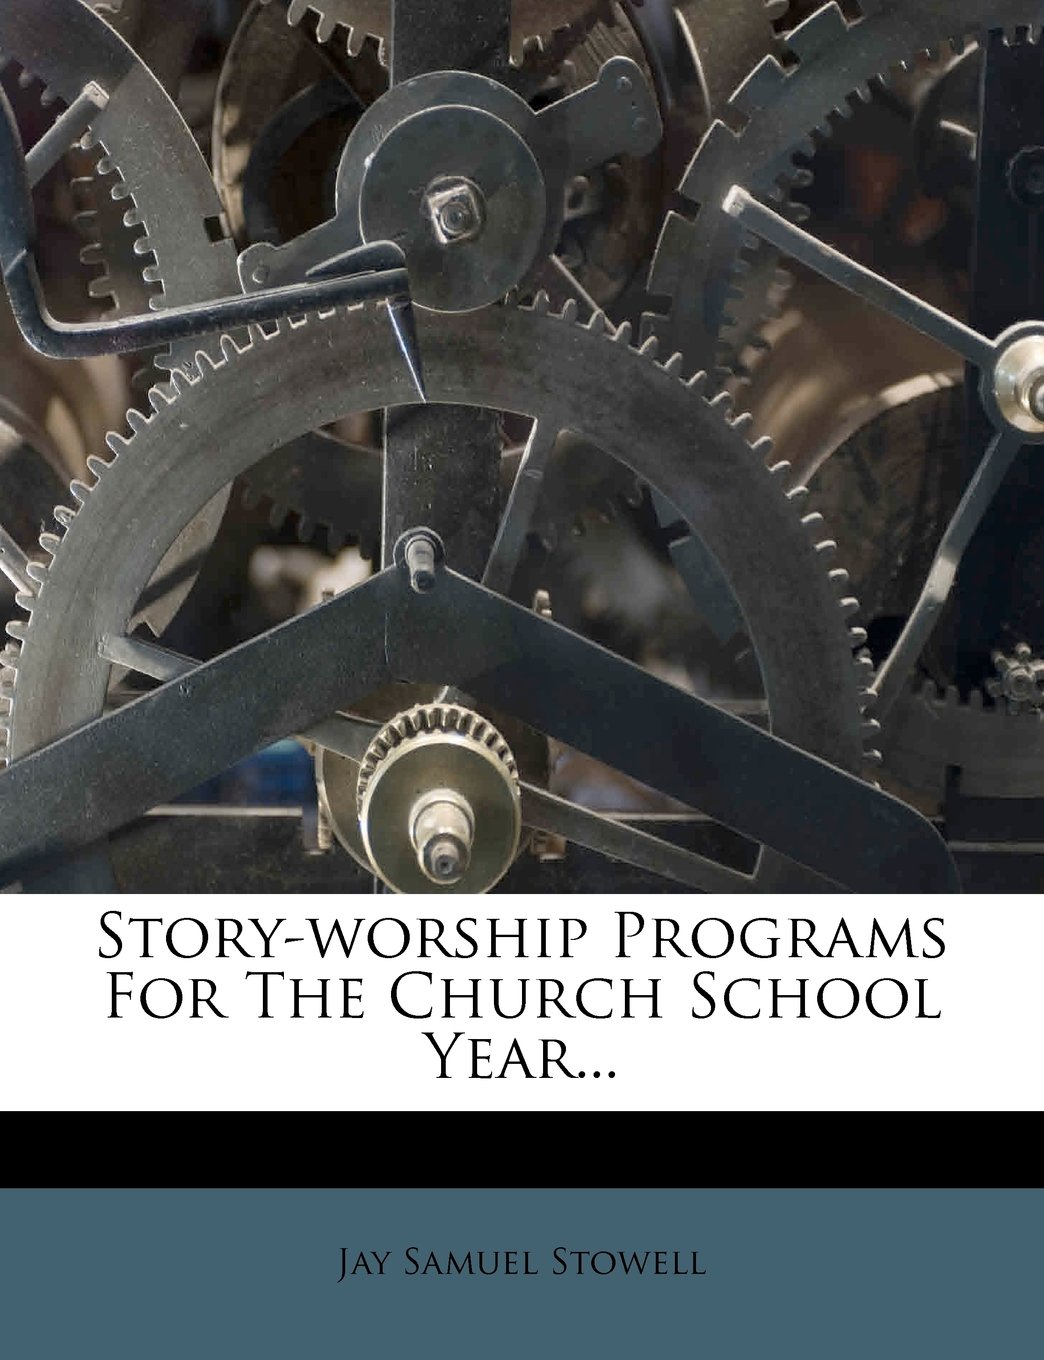 Read Online Story-worship Programs For The Church School Year... PDF